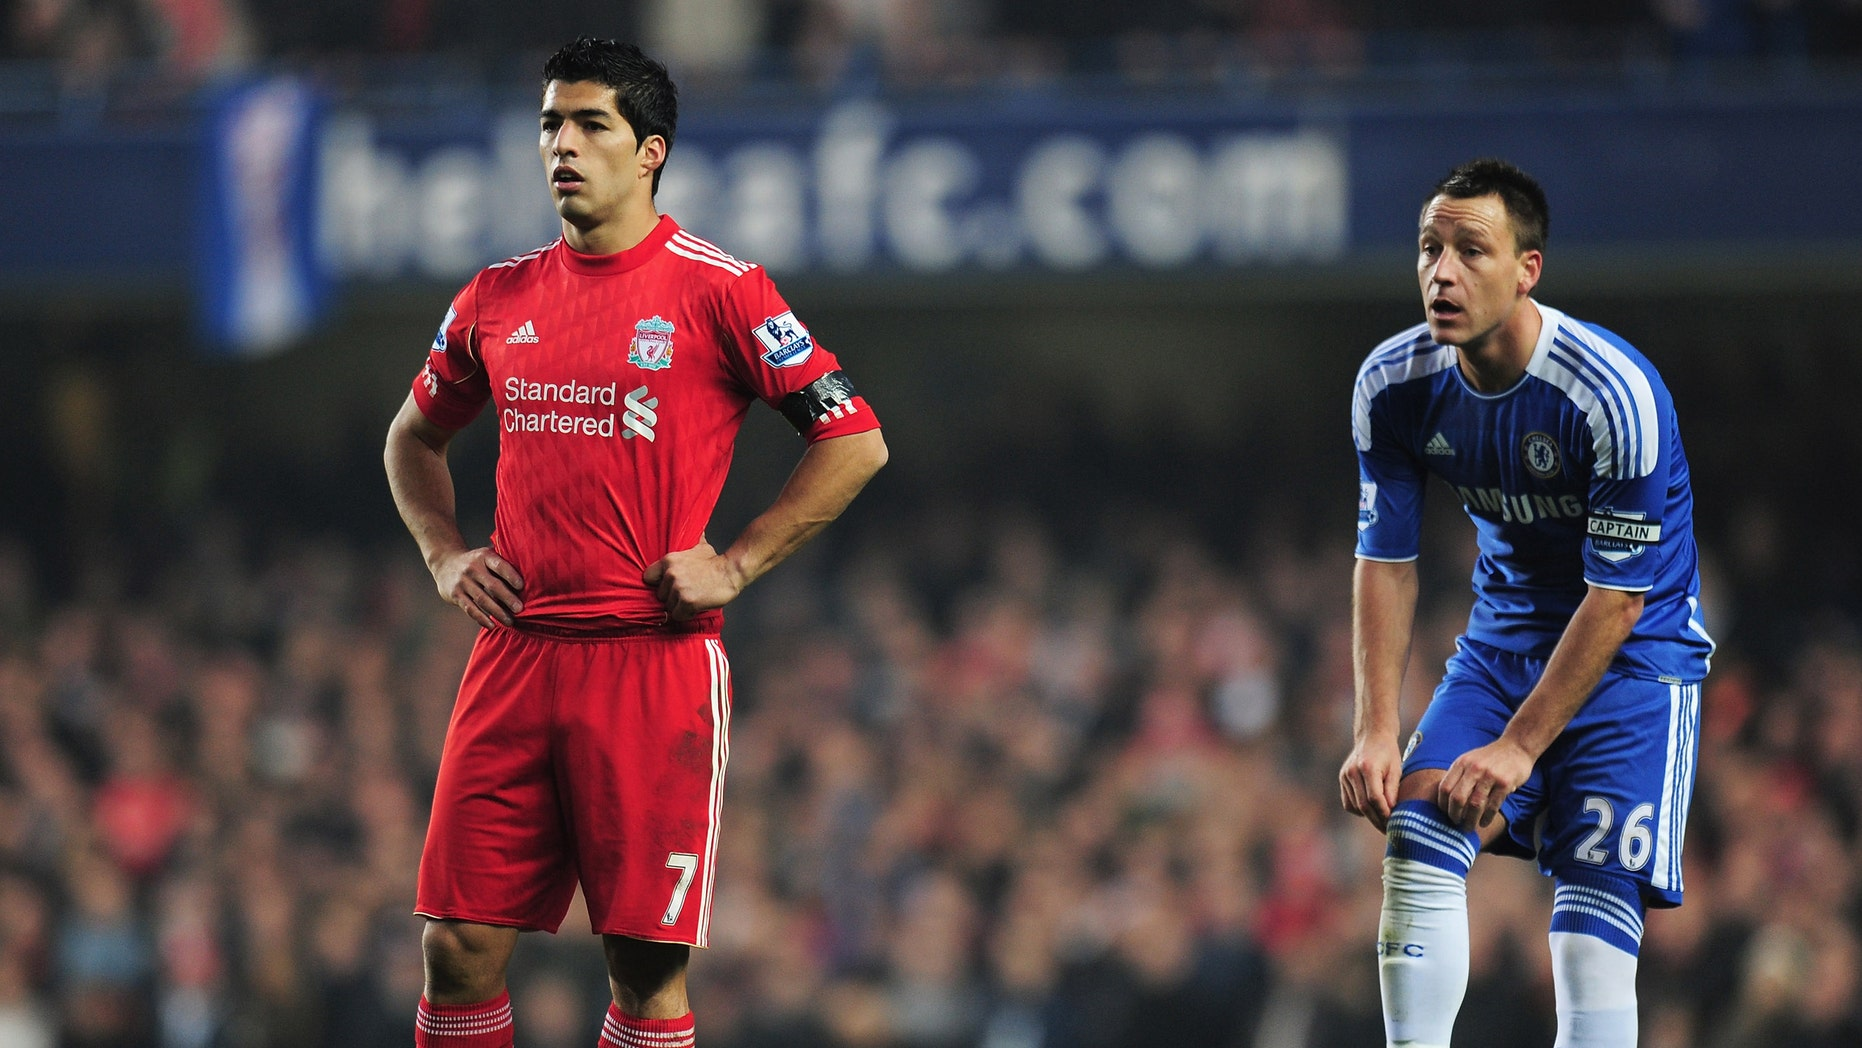 LONDON, ENGLAND - NOVEMBER 20: Luis Suarez of Liverpool looks on with John Terry of Chelsea during the Barclays Premier League match between Chelsea and Liverpool at Stamford Bridge on November 20, 2011 in London, England.  (Photo by Shaun Botterill/Getty Images)